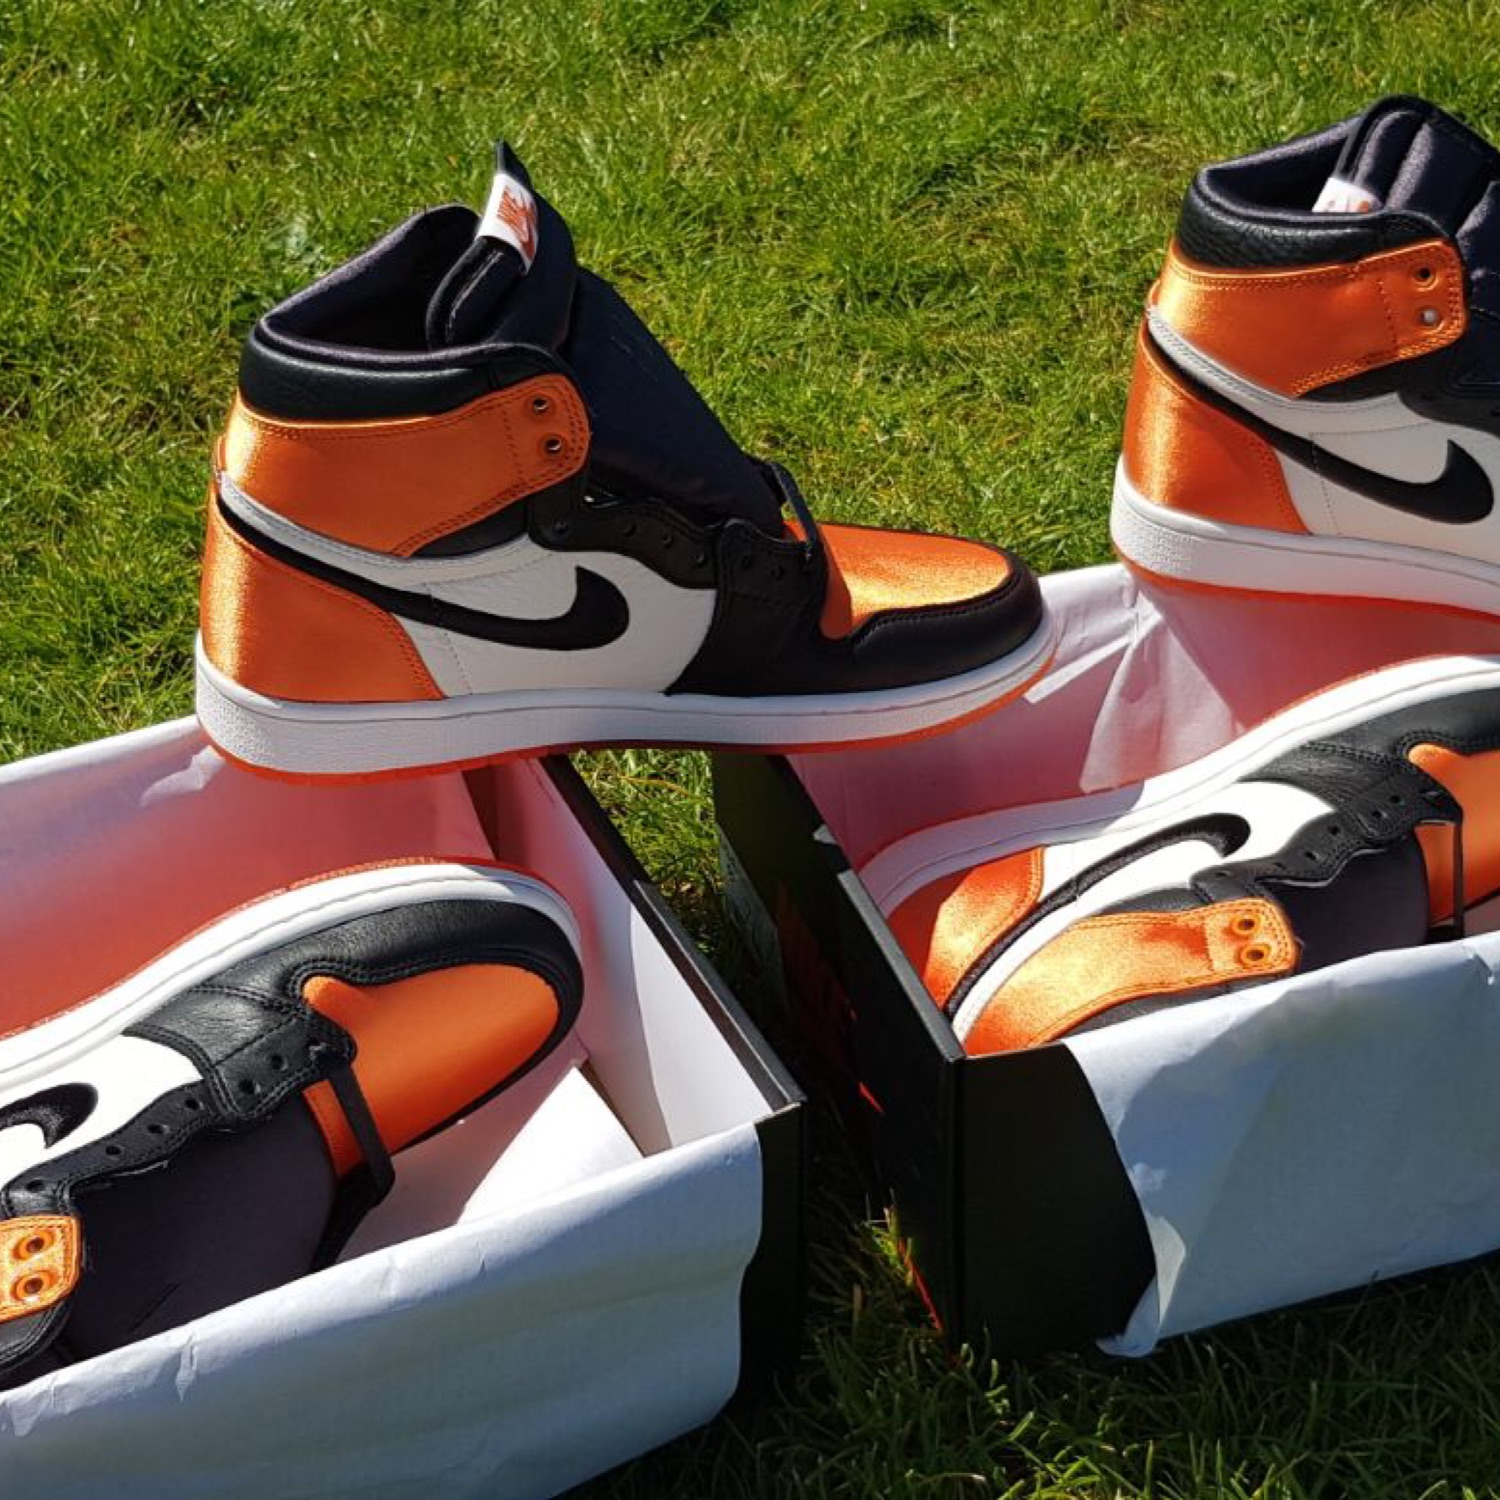 competitive price 6338c 130a6 Air Jordan 1 Satin Shattered Backboard Womens